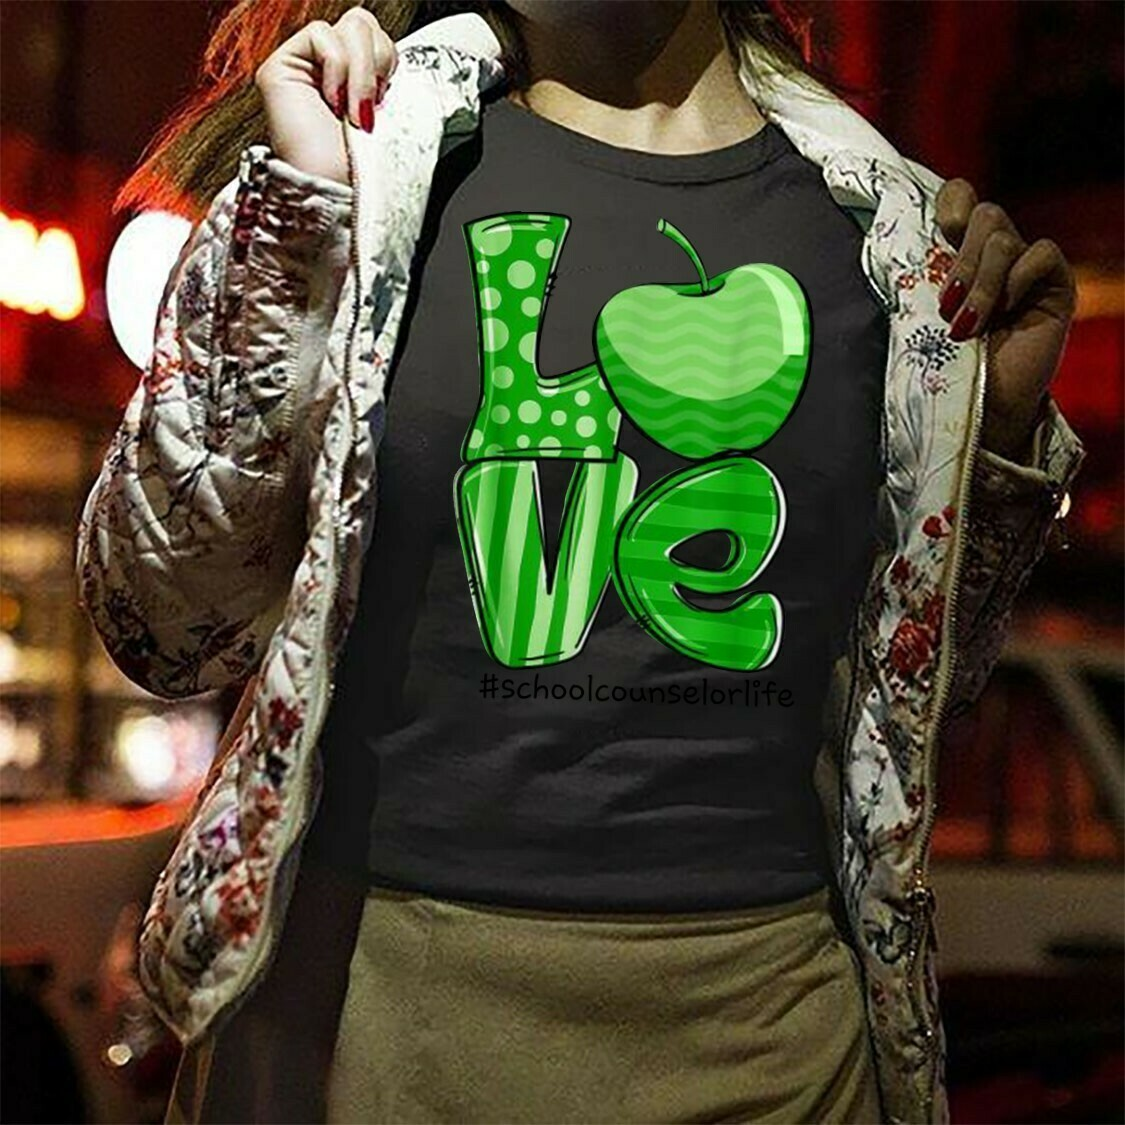 LOVE School Counselor Life St Patrick's Day Activities gift for Teachers class room T-Shirt Hoodie Sweatshirt Sweater Tee Kids Youth Gifts Jolly Family Gifts